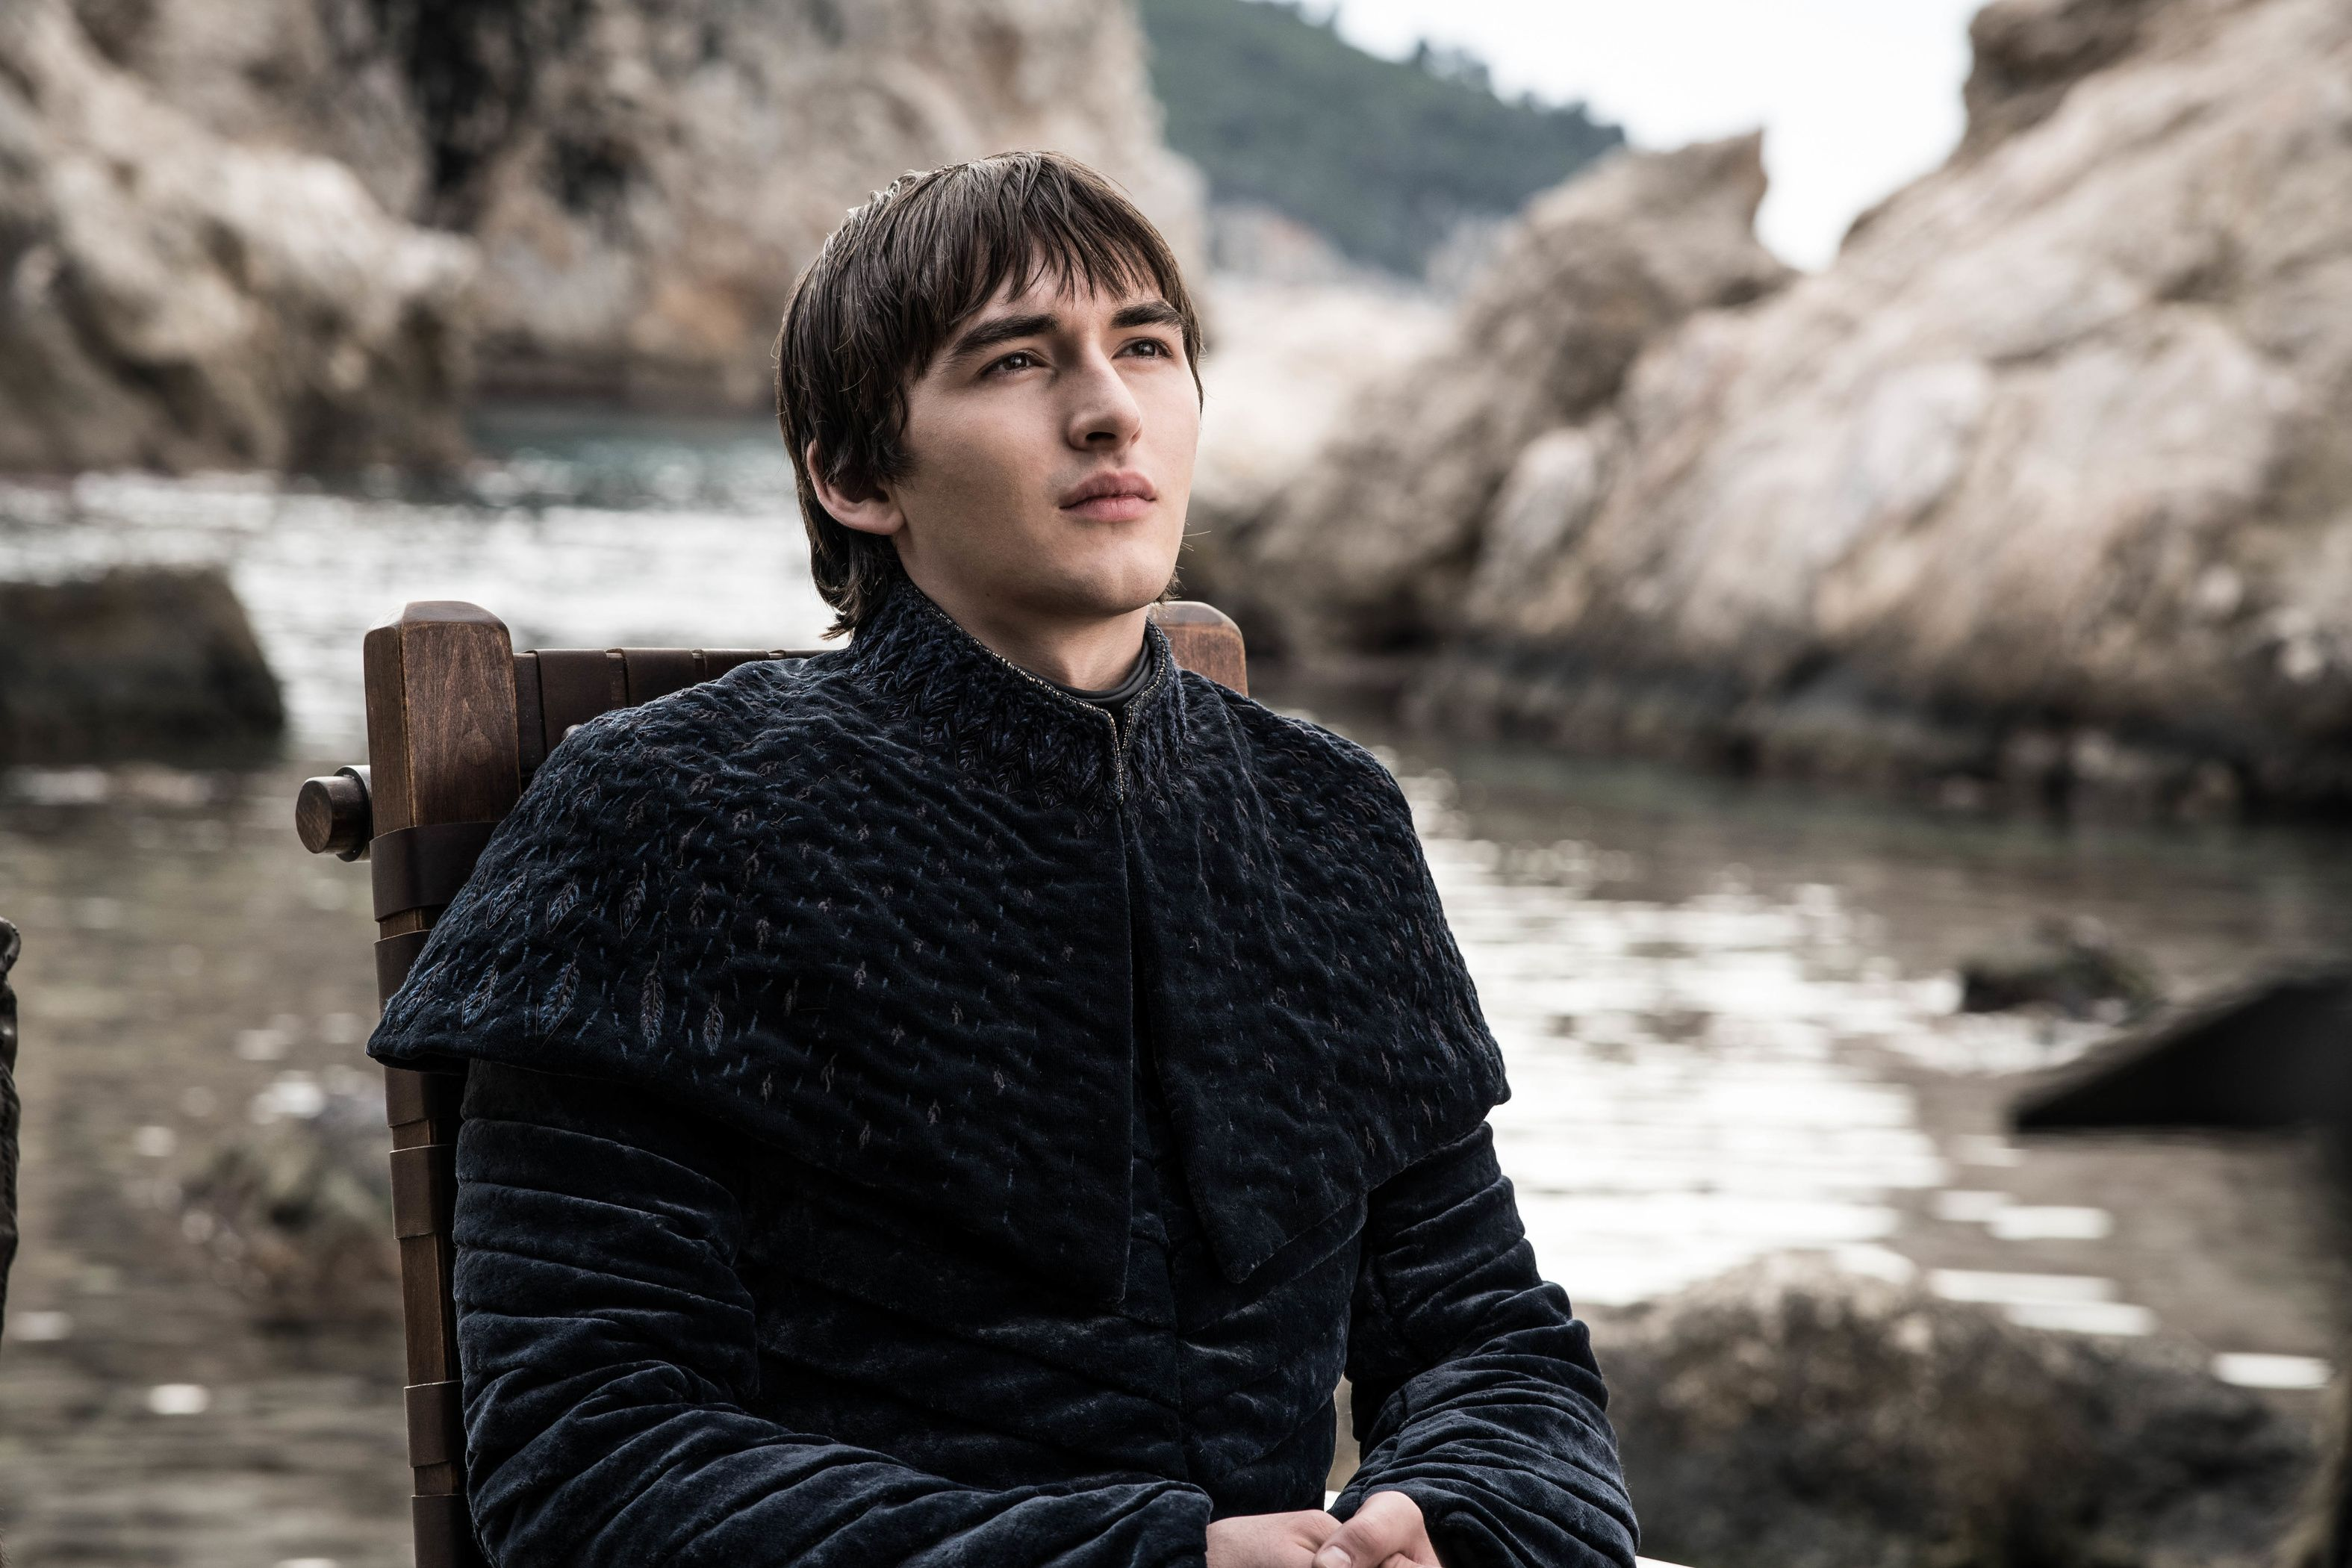 Isaac Hempstead-Wright on Bran Stark's Game of Thrones Fate: 'I Genuinely Thought It was a Joke Script'